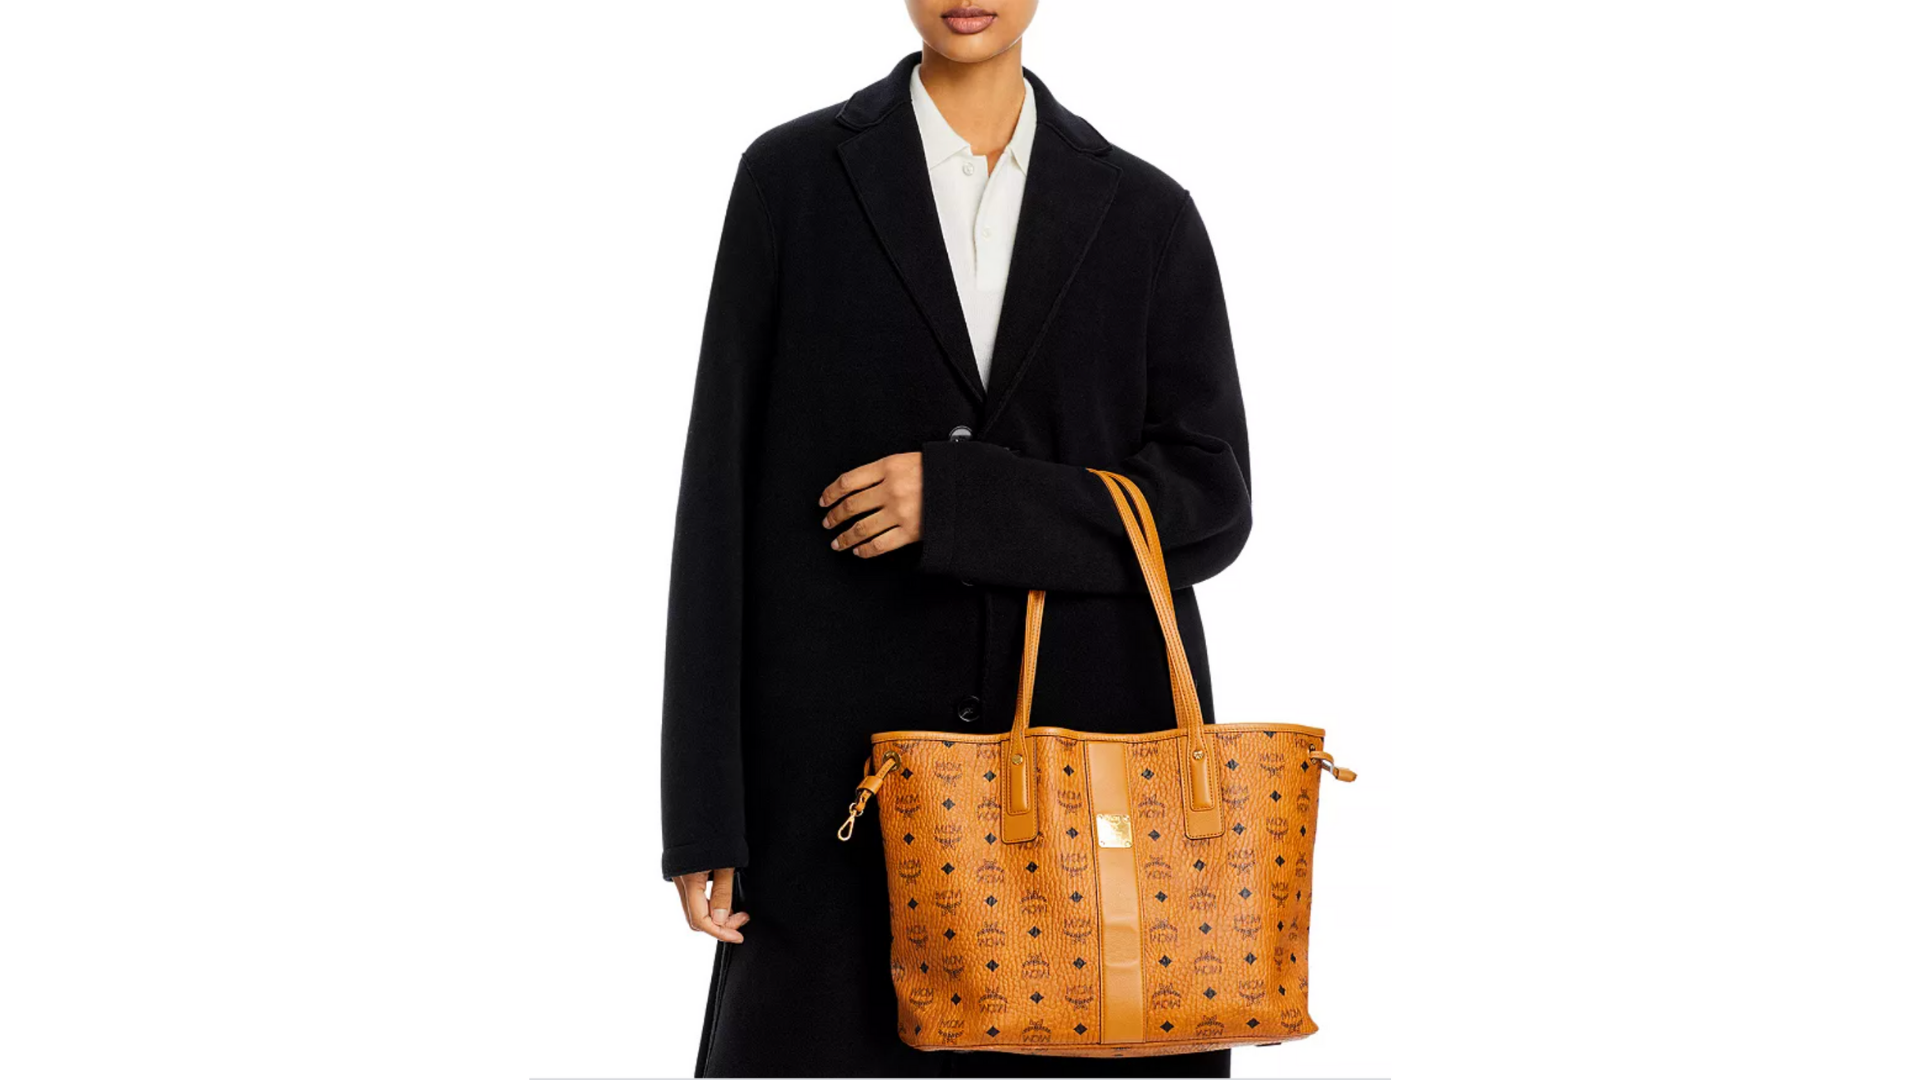 Bloomingdale's best clothing stores for women over 50 (12)